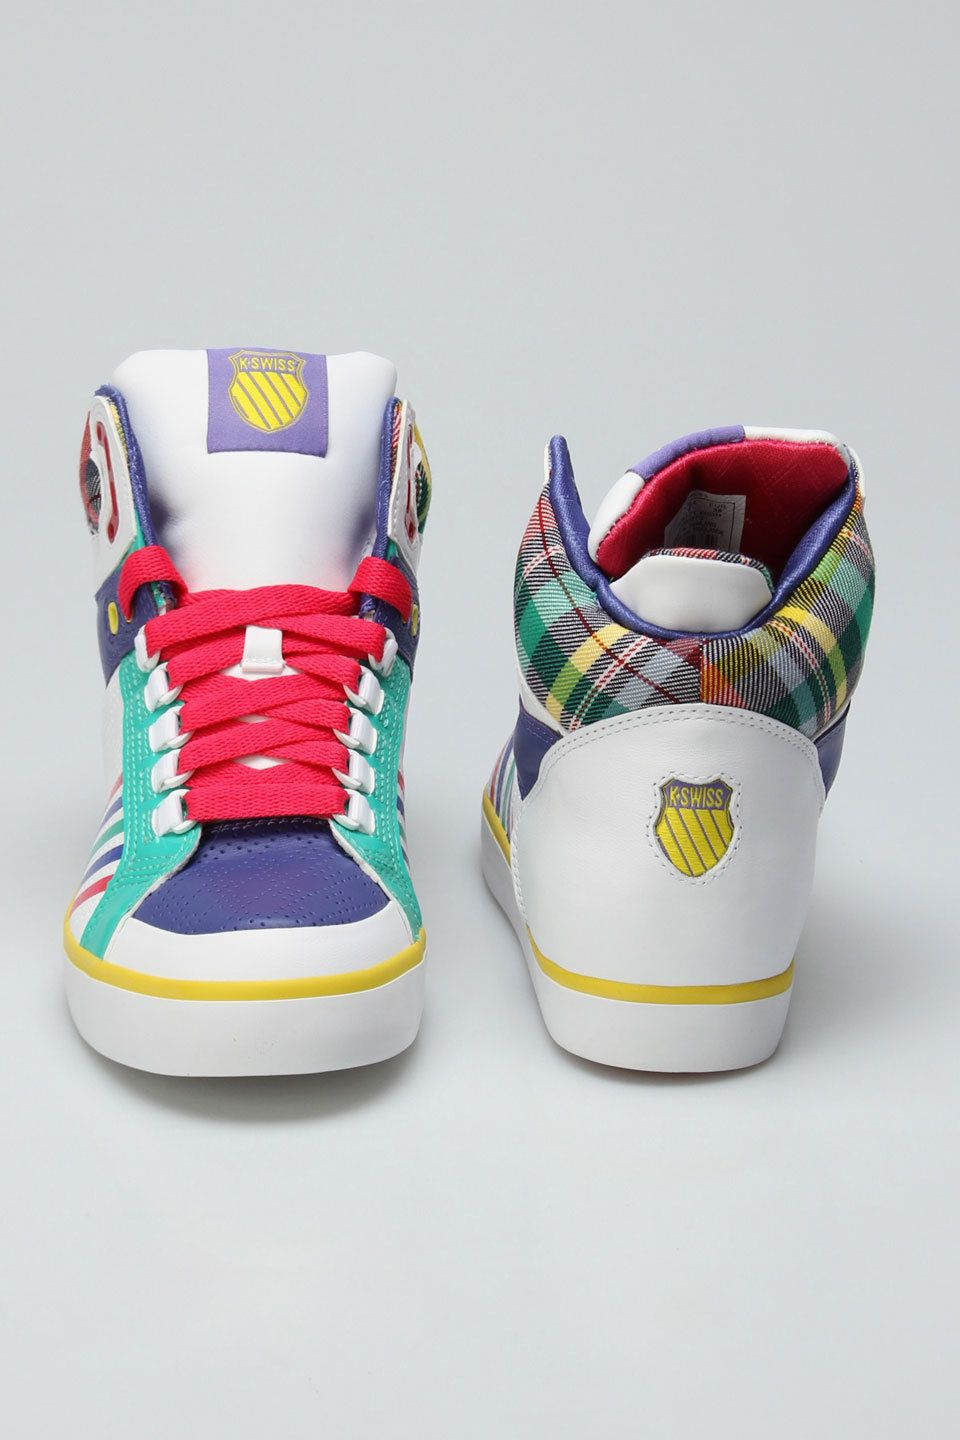 Kswiss shoes